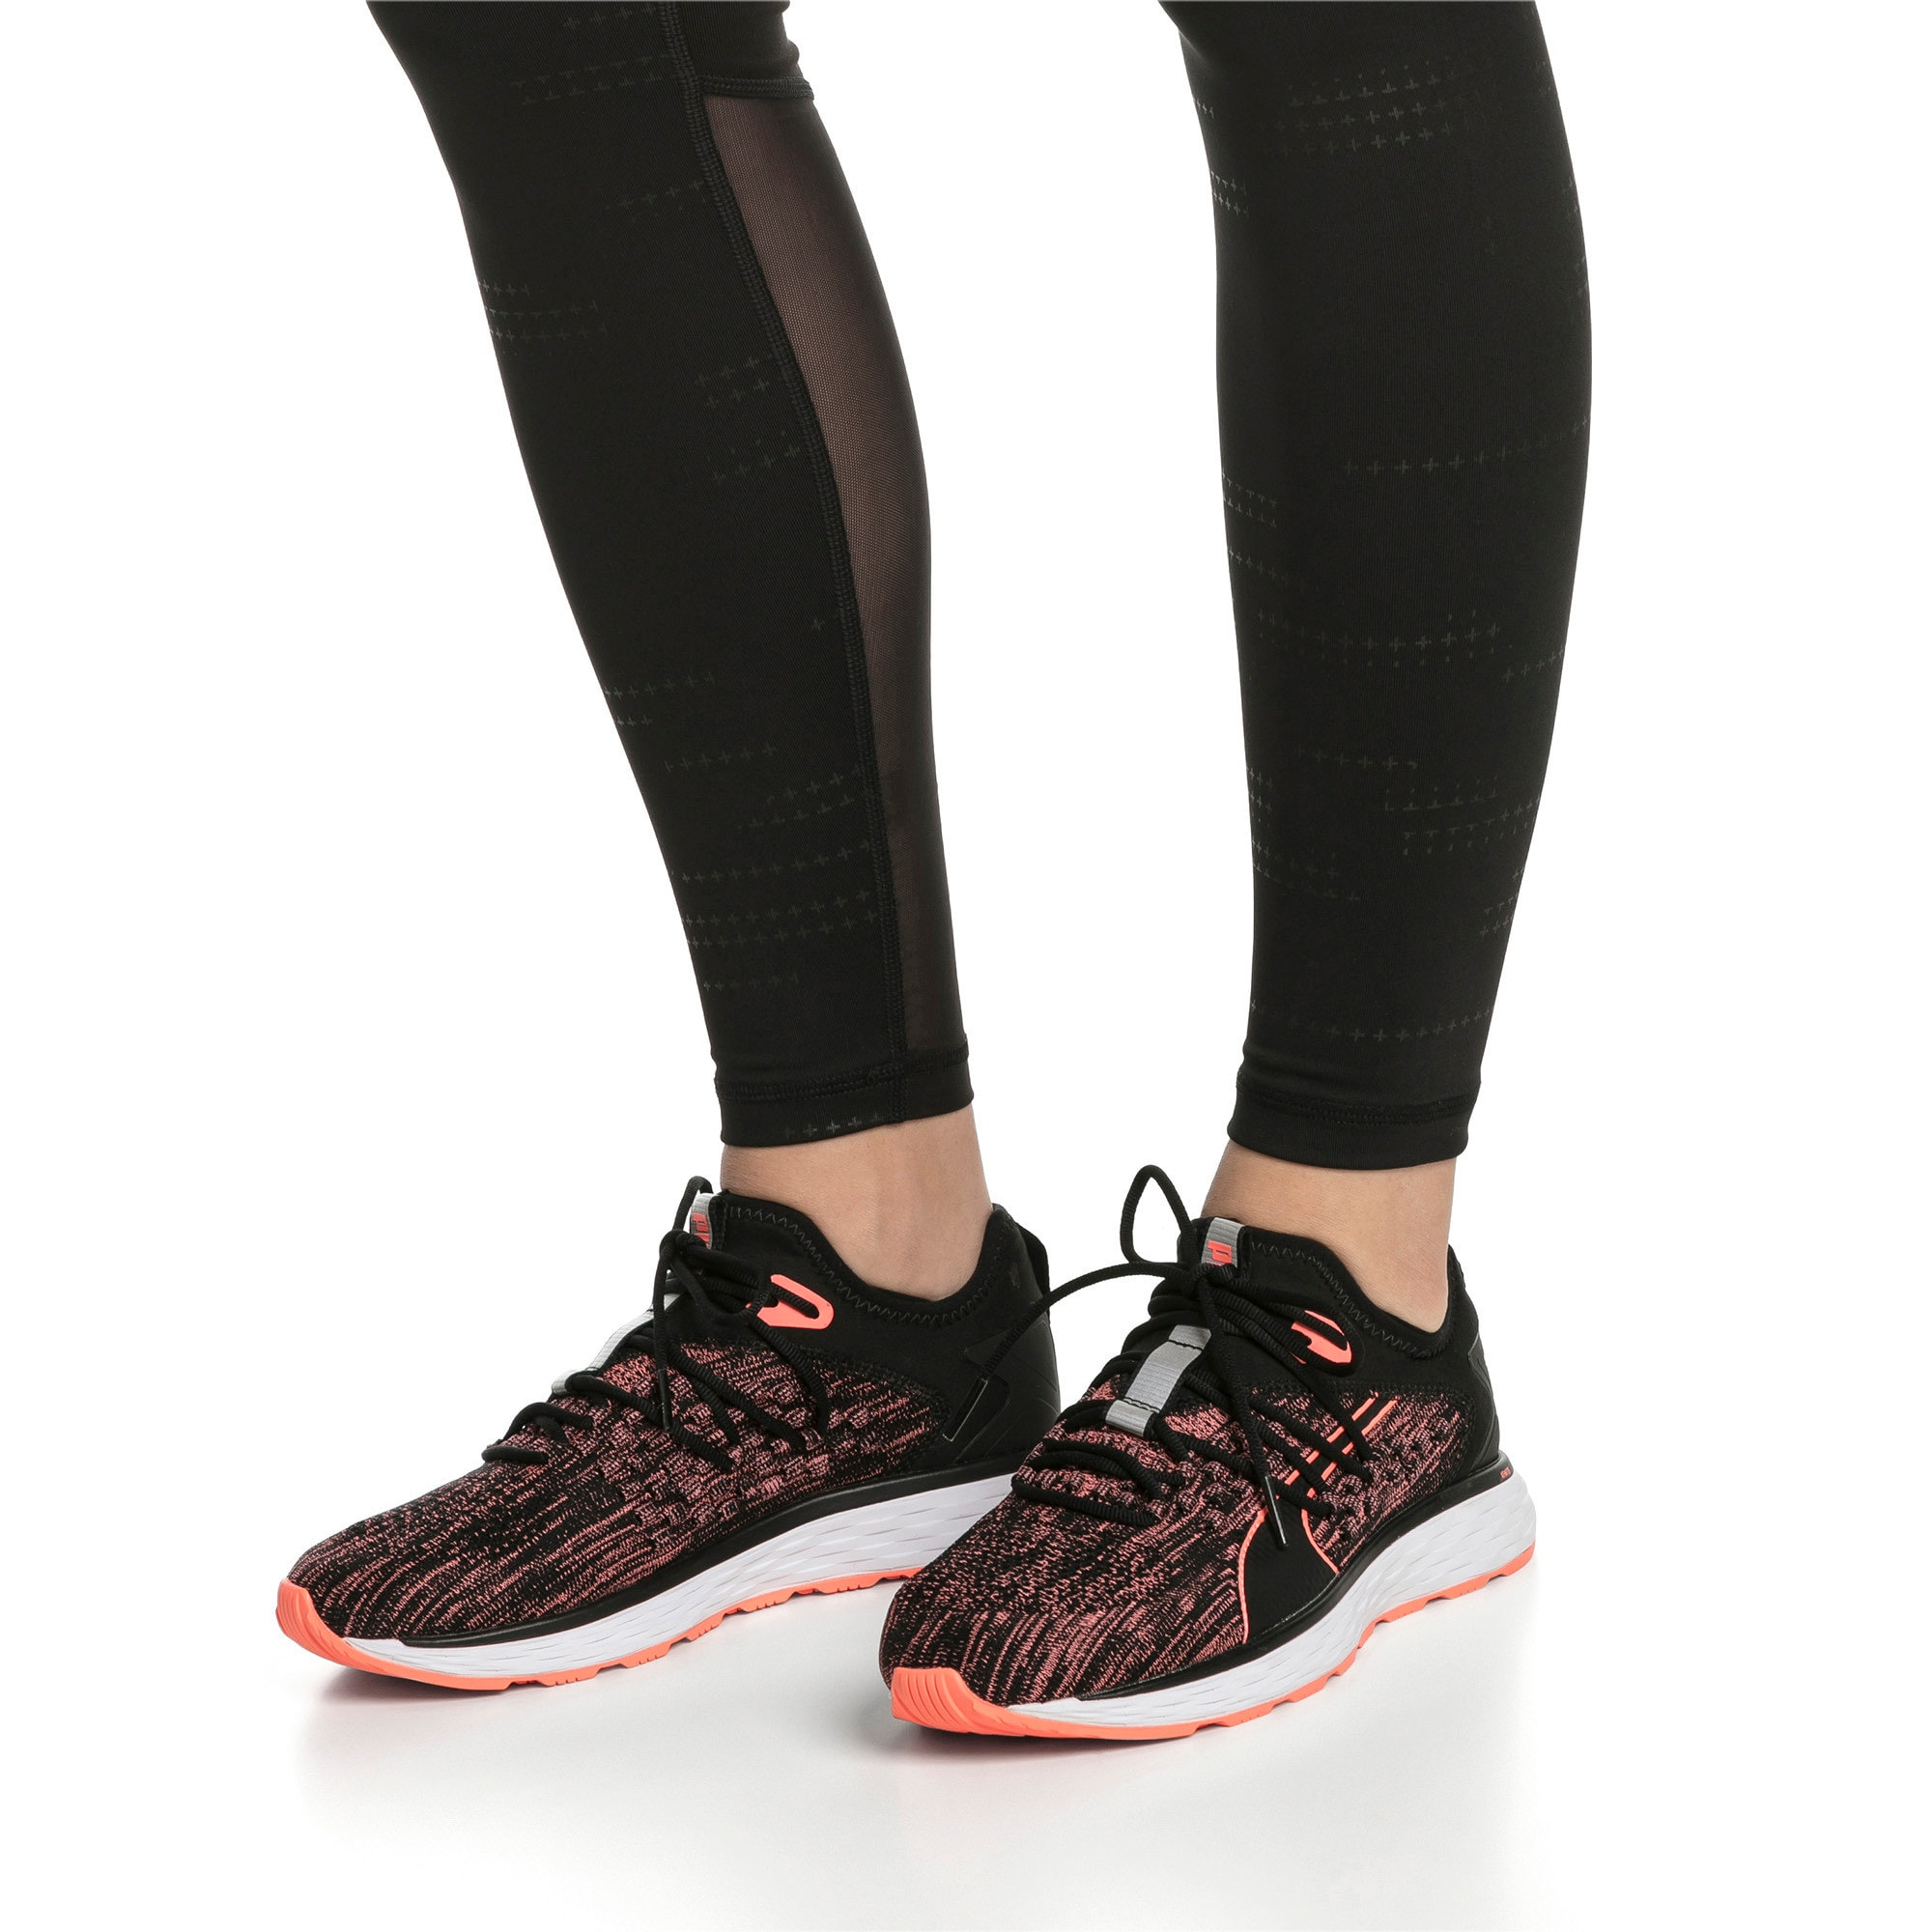 Thumbnail 2 of SPEED FUSEFIT Women's Running Shoes, Puma Black-Fluo Peach, medium-IND